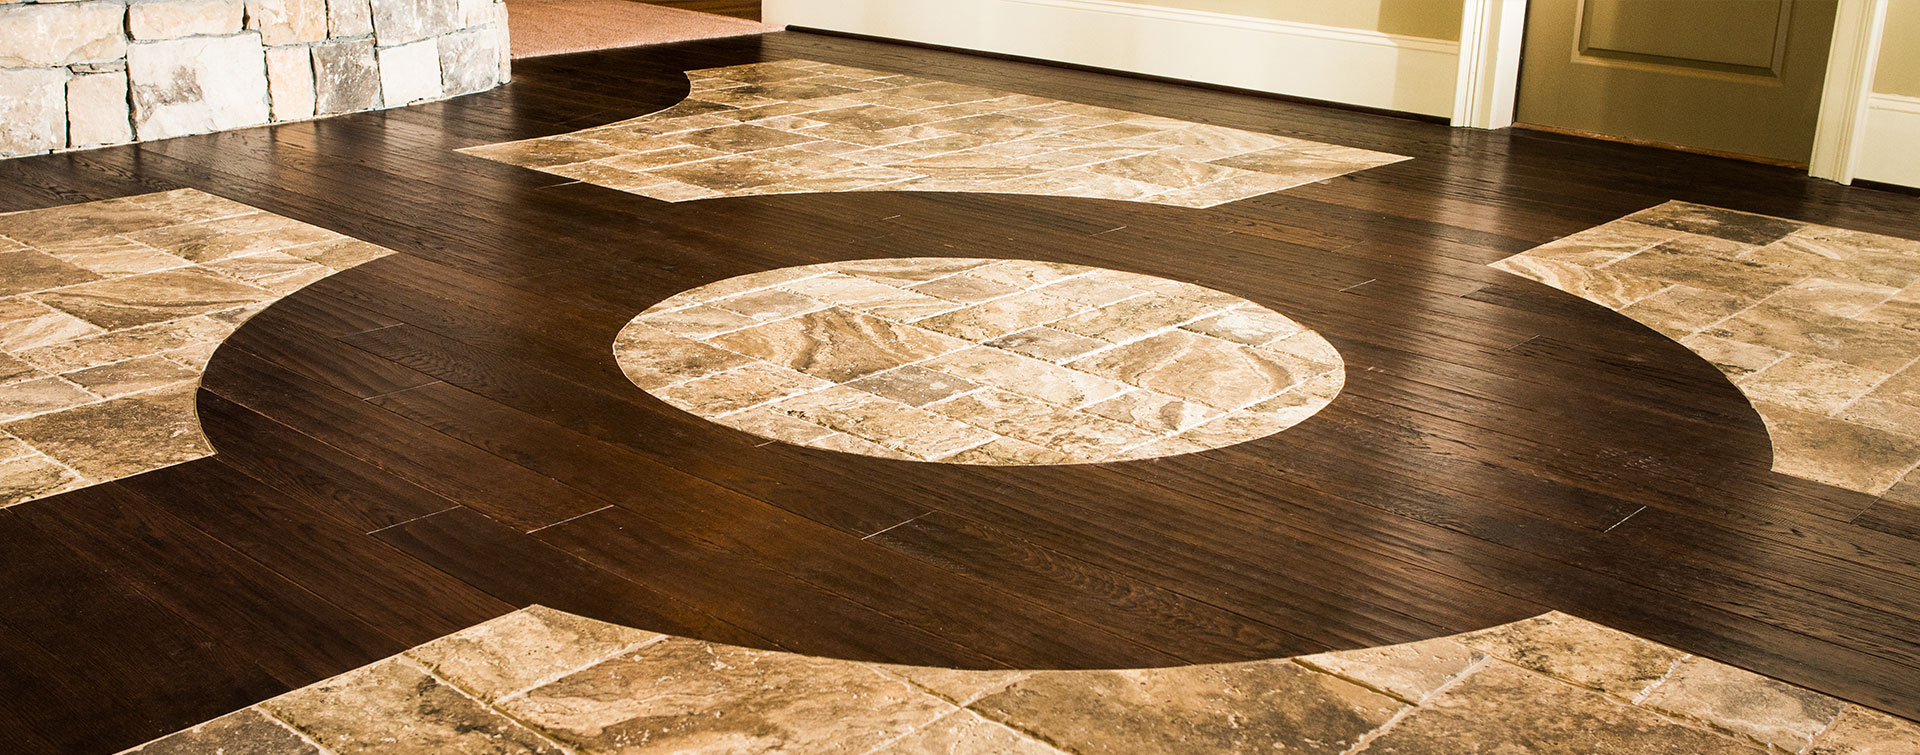 custom-wood-and-stone-tile-flooring-pattern